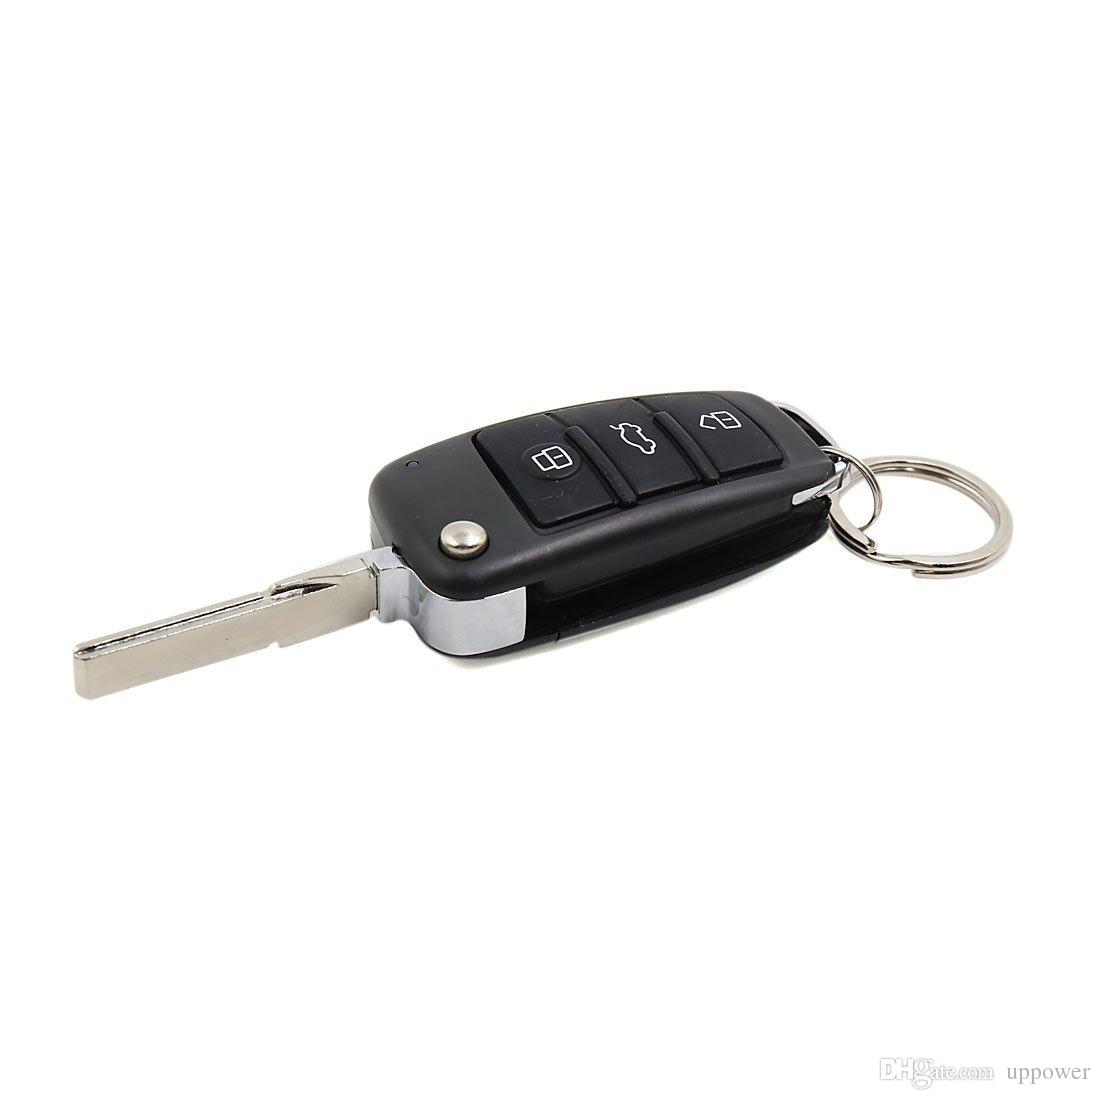 CarBest Car Alarm System Auto Remote Central Kit Door Lock Vehicle Keyless Entry System, Open the tail box remotely and automatically raise